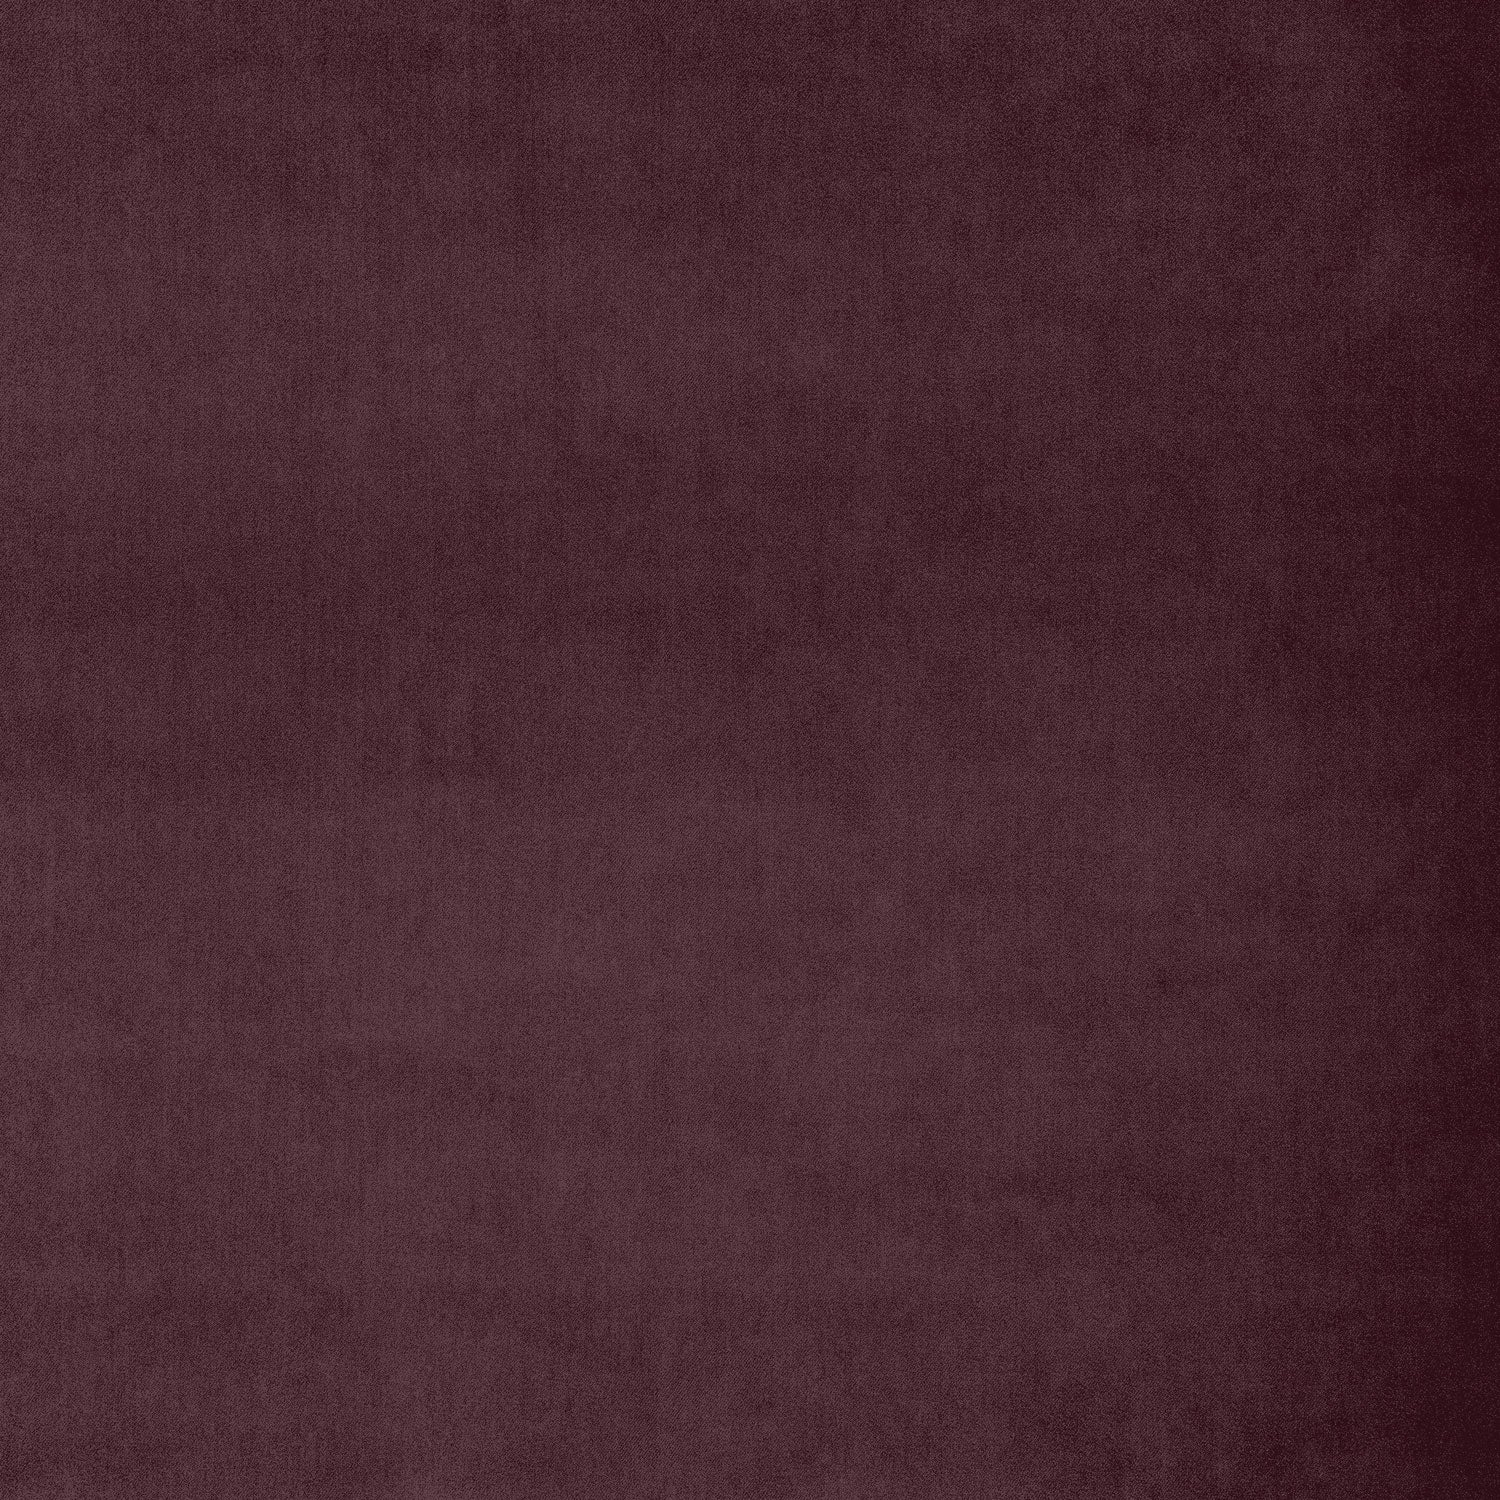 Fabric swatch of a dark purple velvet fabric for curtains and upholstery with a stain resistant finish